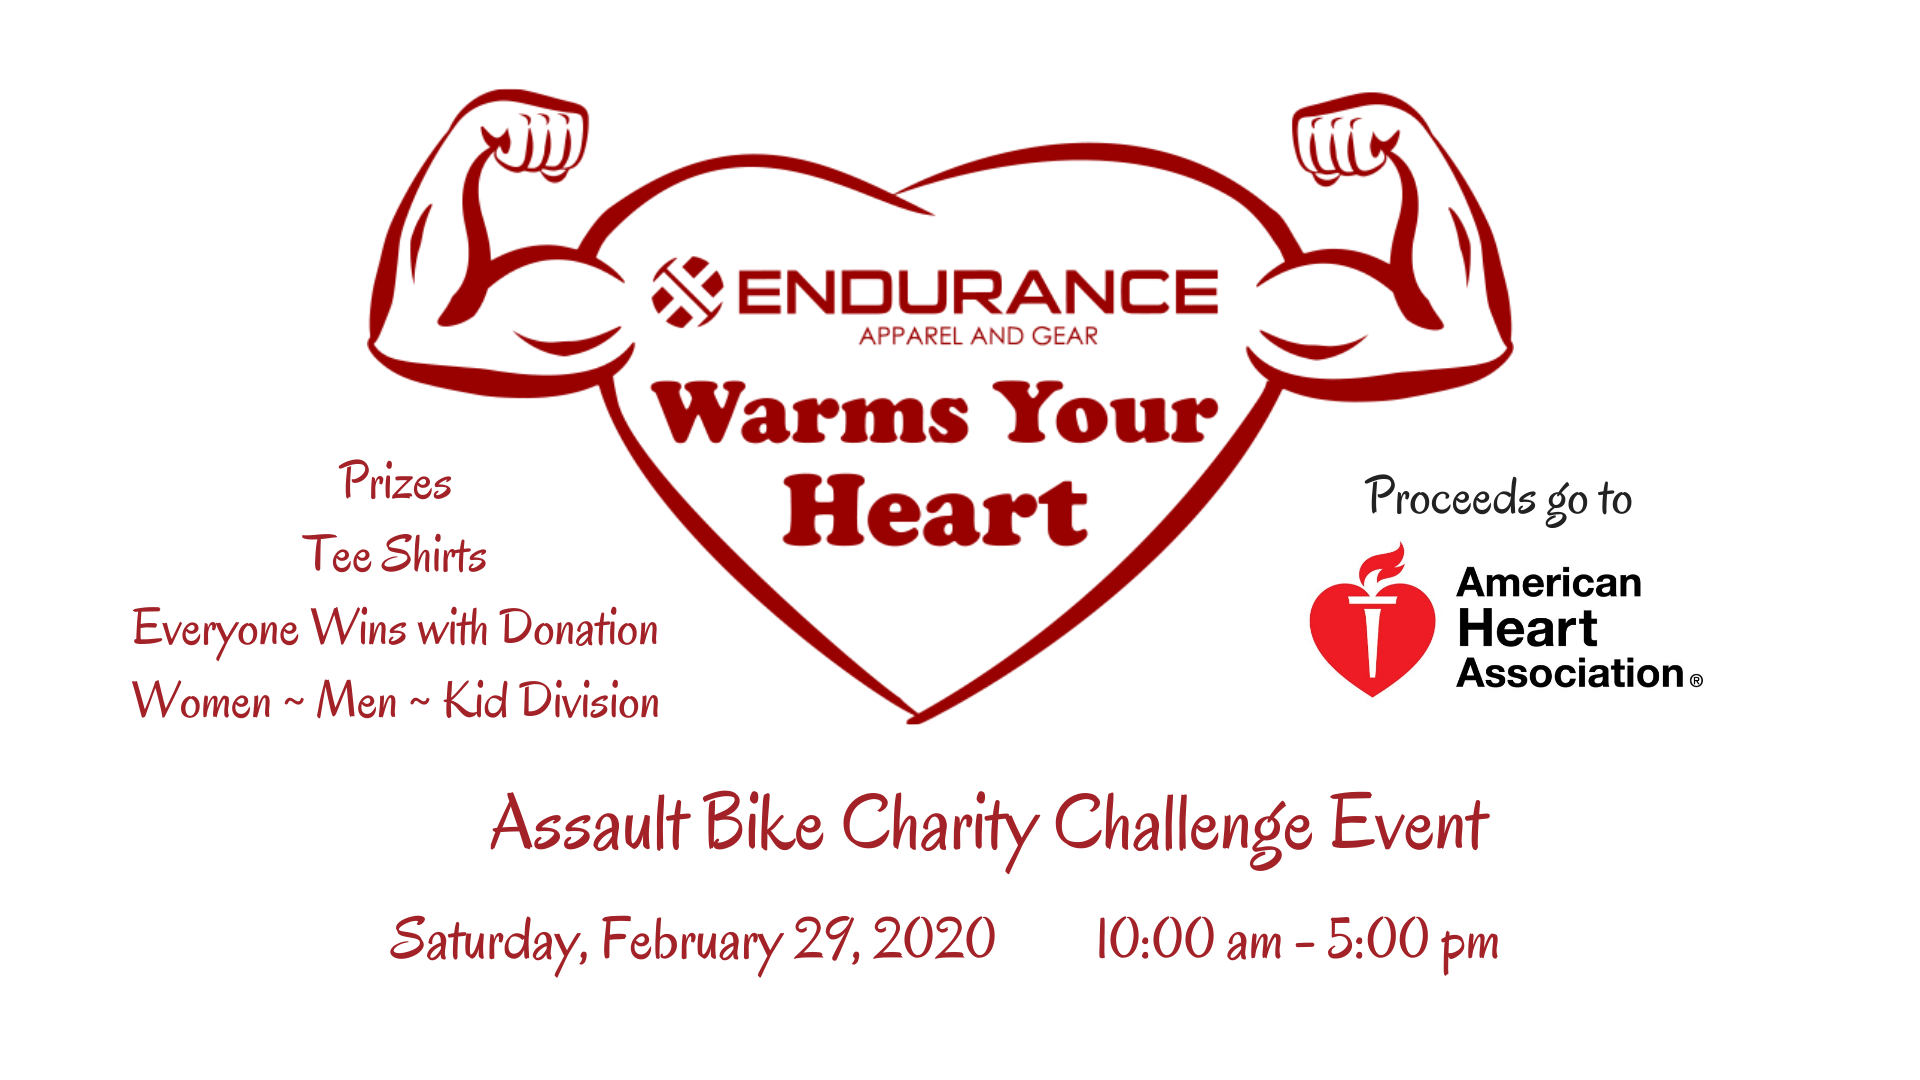 Endurance Warms Your Heart 2020